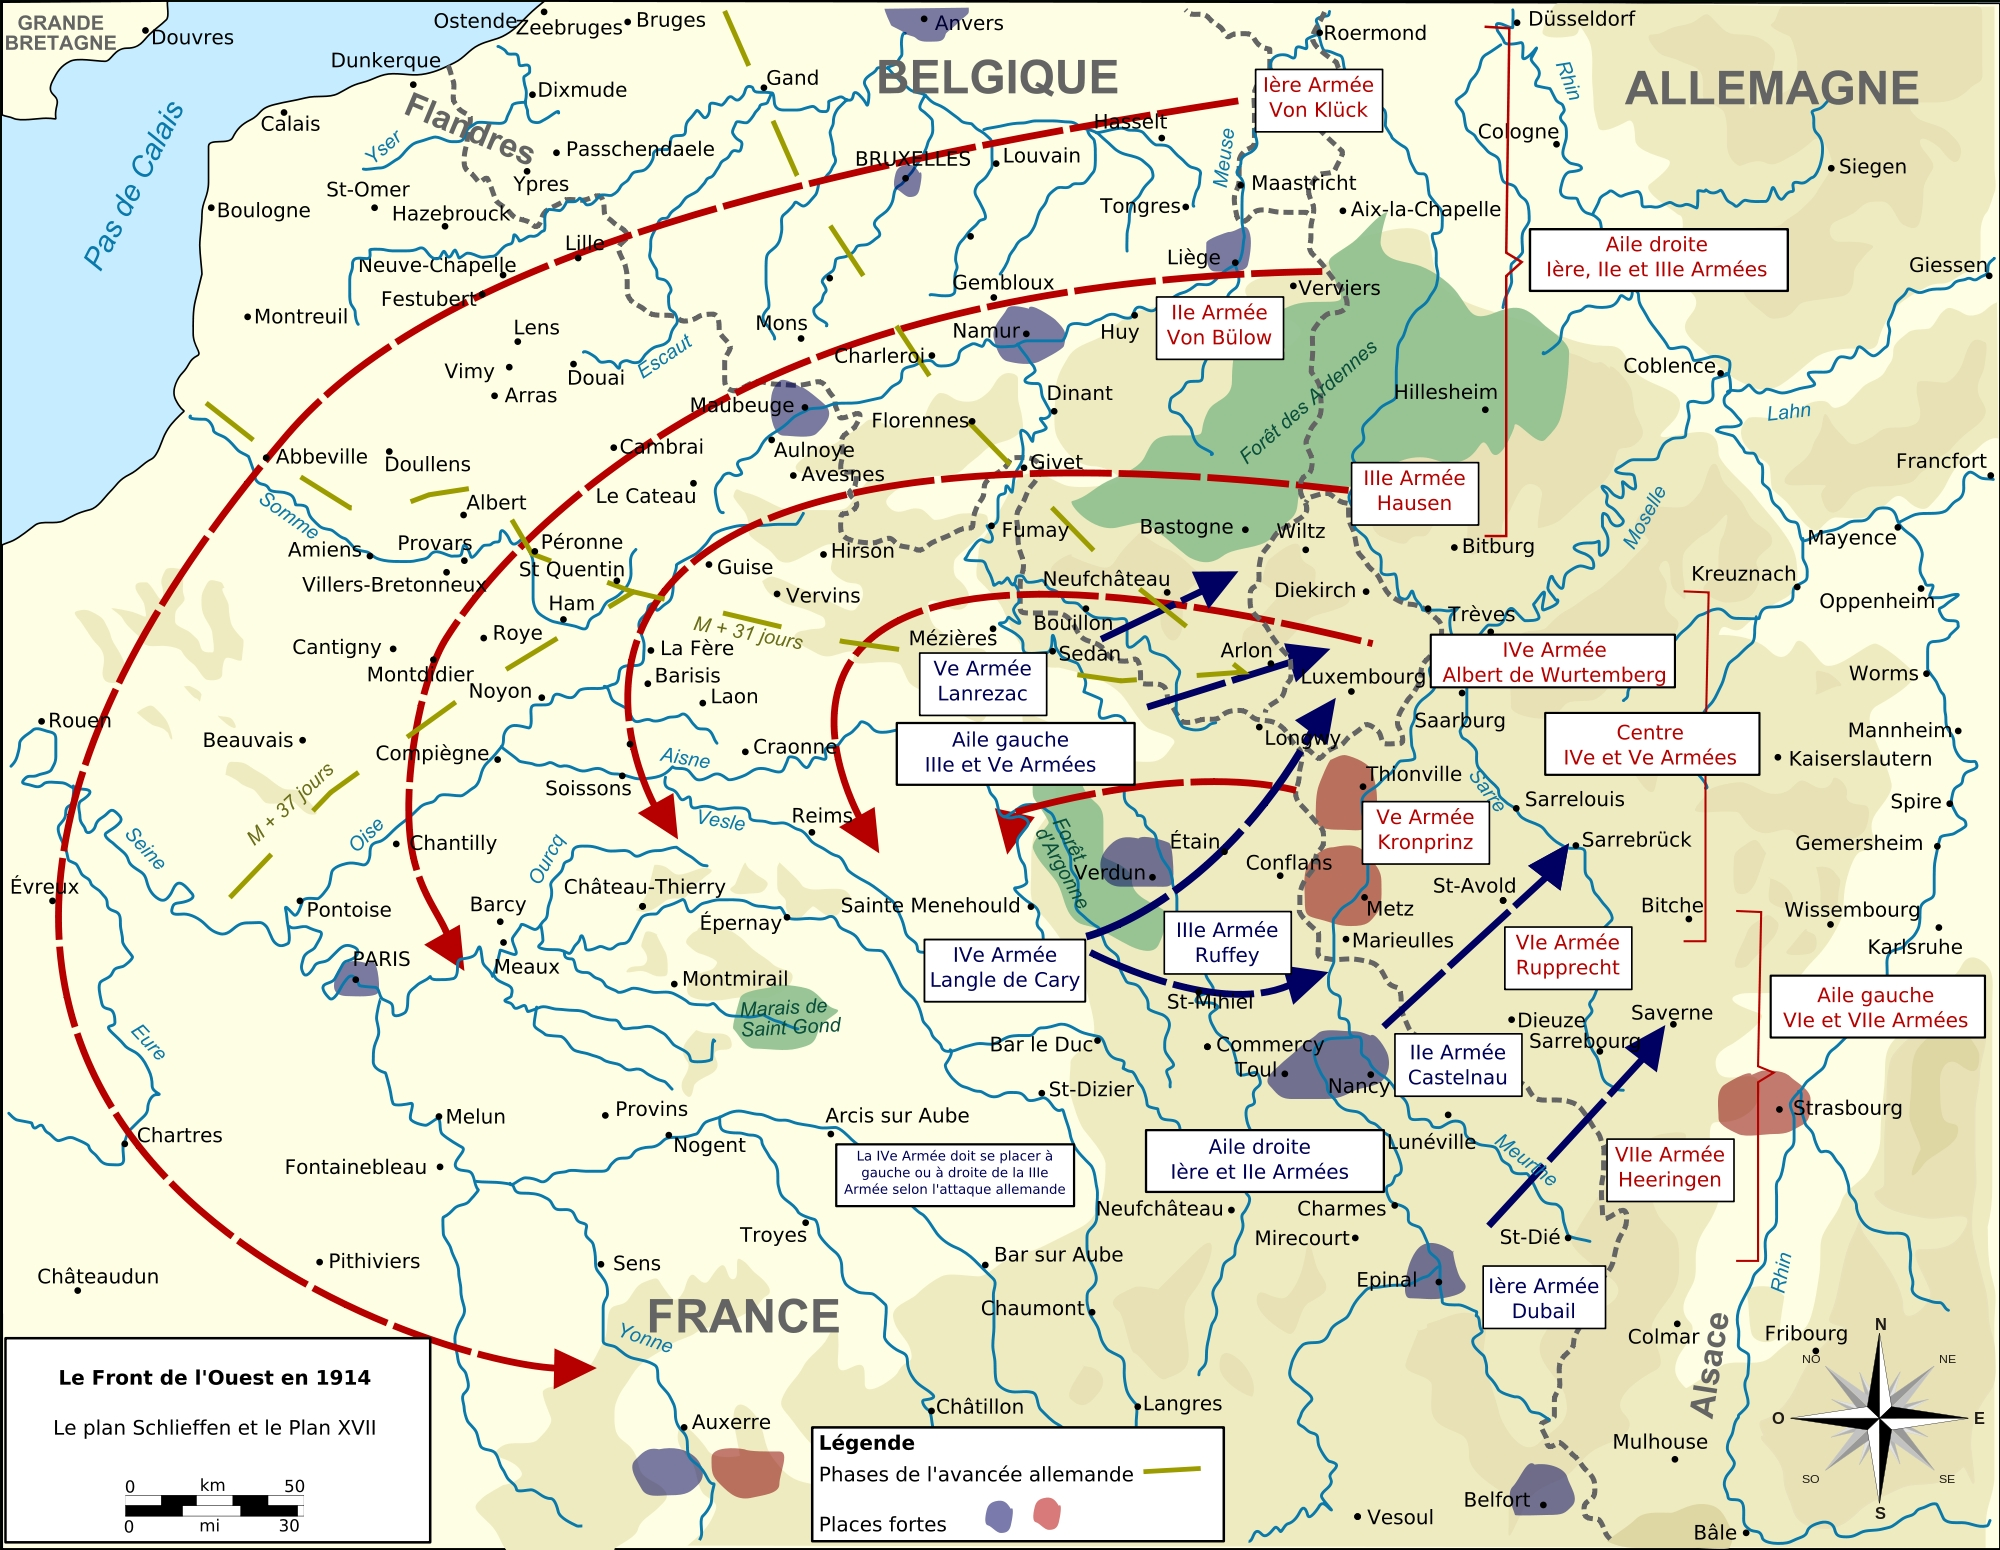 40 Maps That Explain World War I | Vox within Germany Map In World War 1